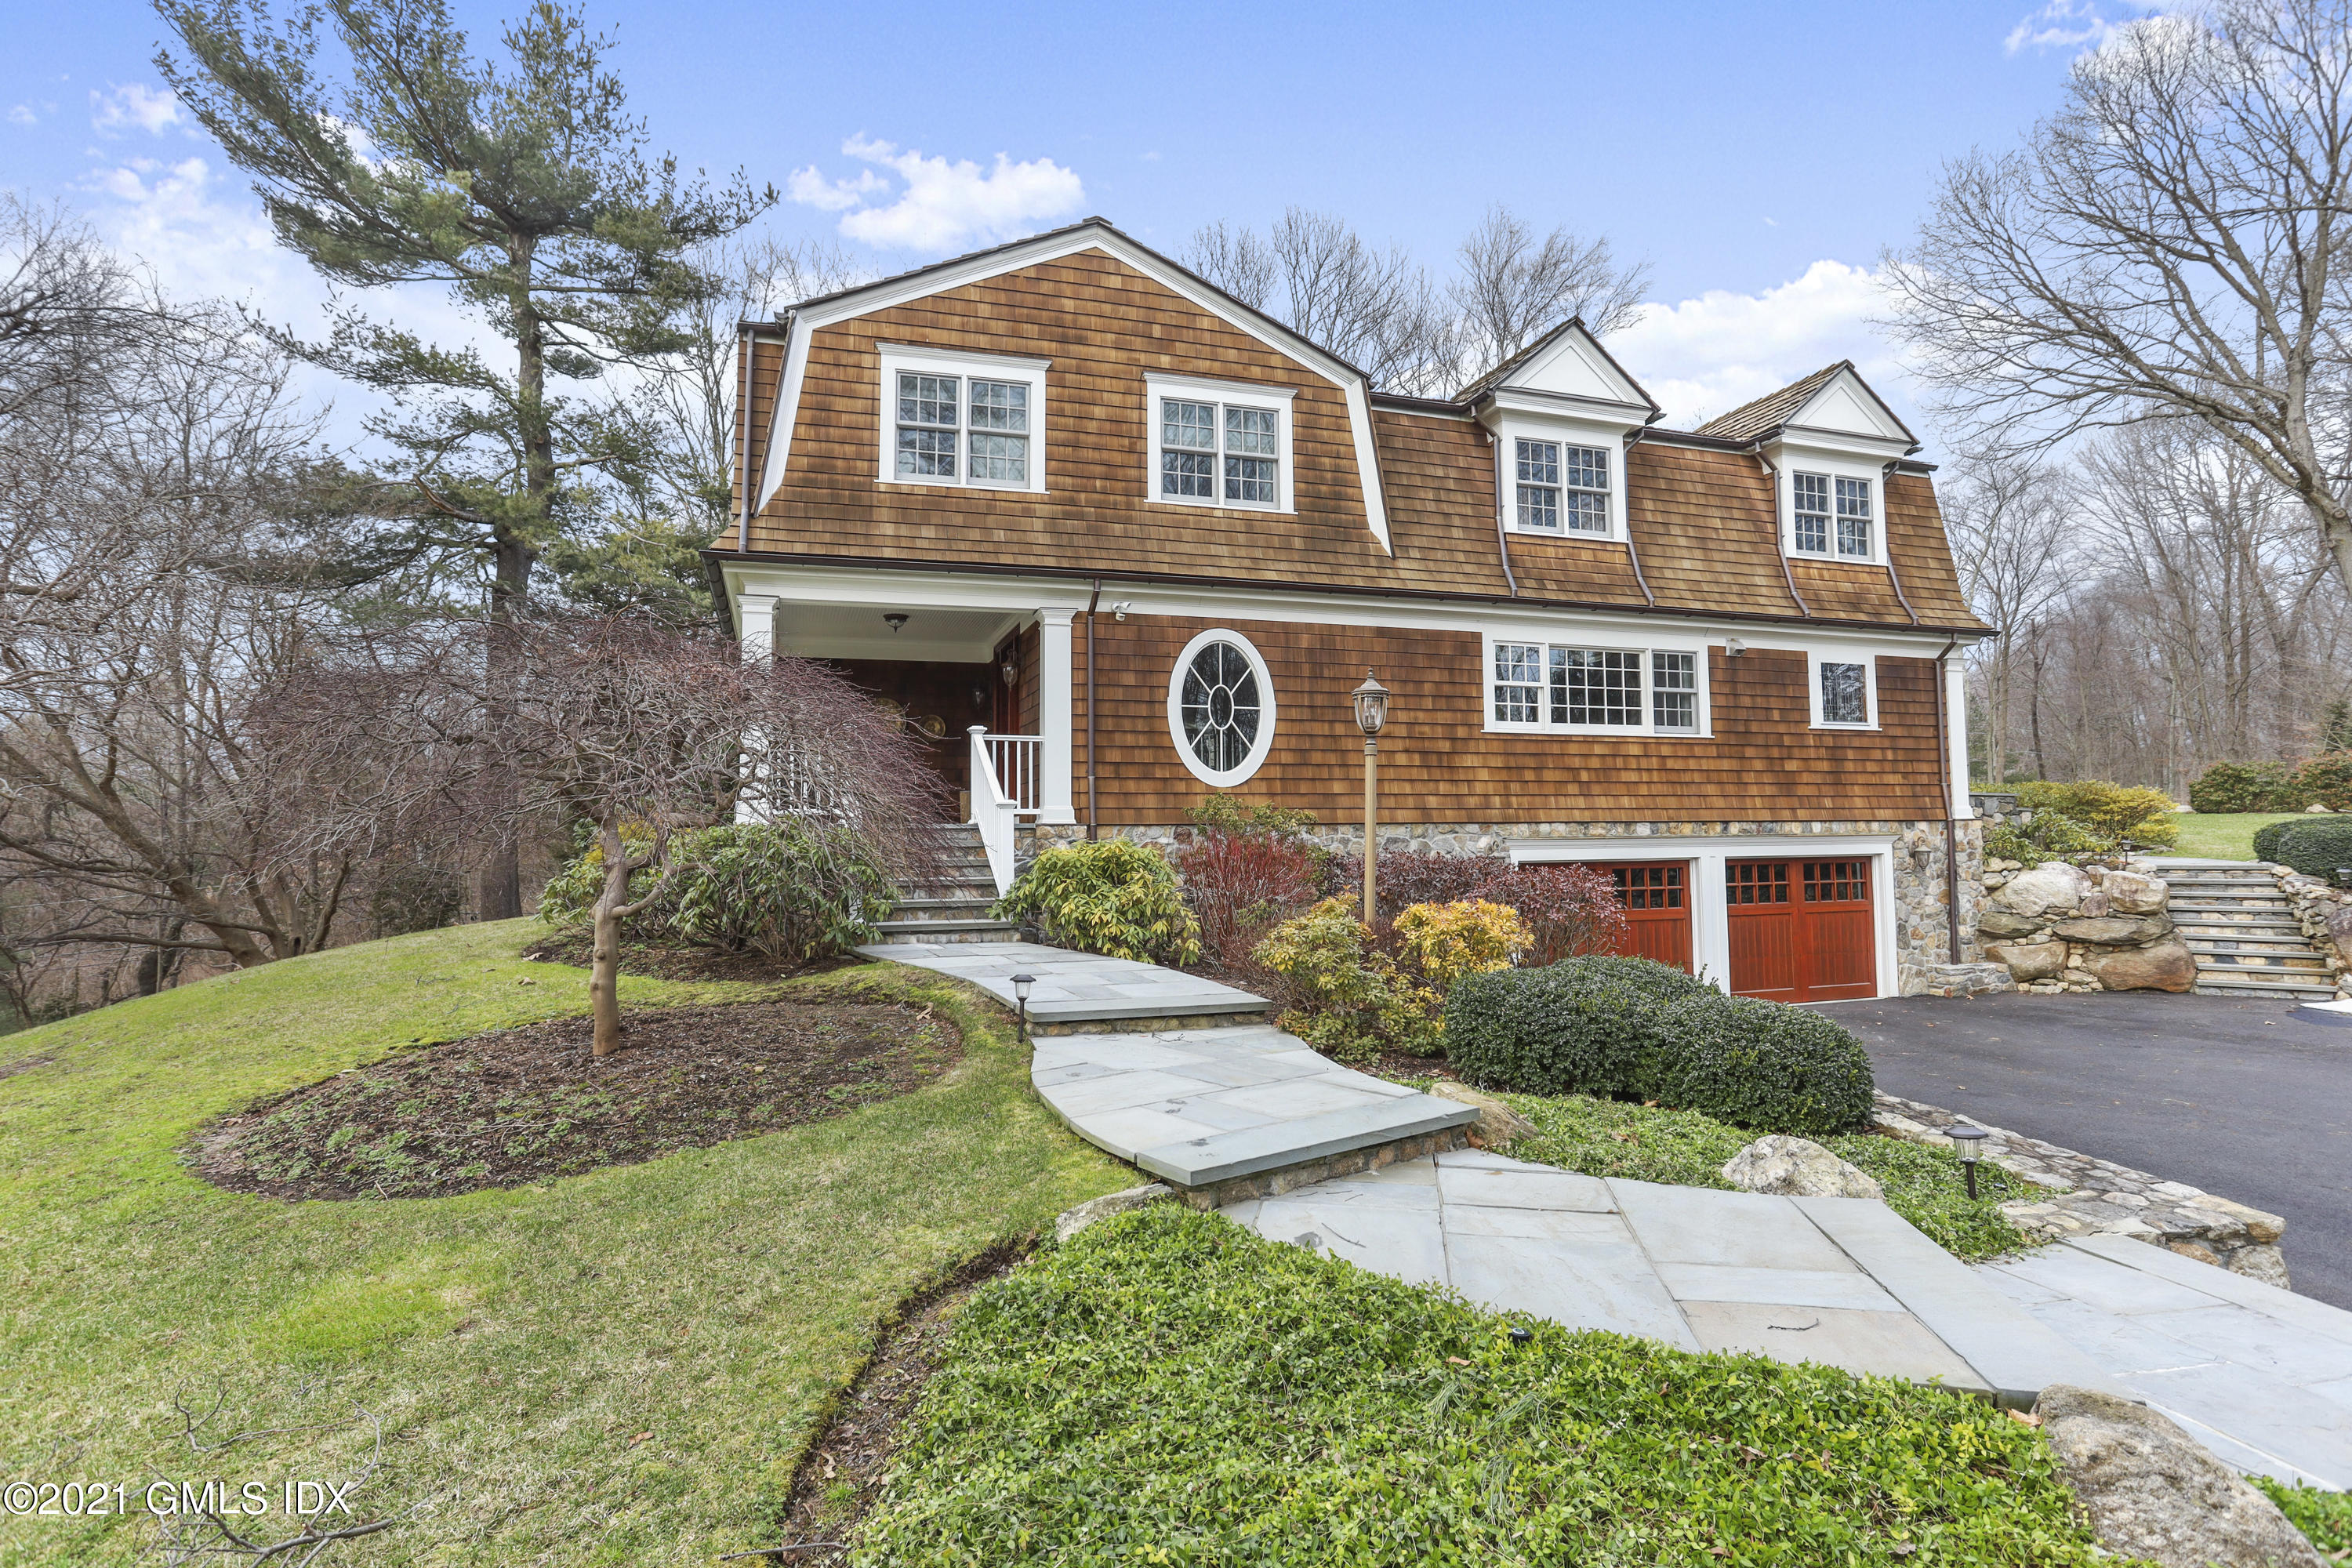 265 Riversville Road, Greenwich, Connecticut 06831, 4 Bedrooms Bedrooms, ,3 BathroomsBathrooms,Single family,For sale,Riversville,112235